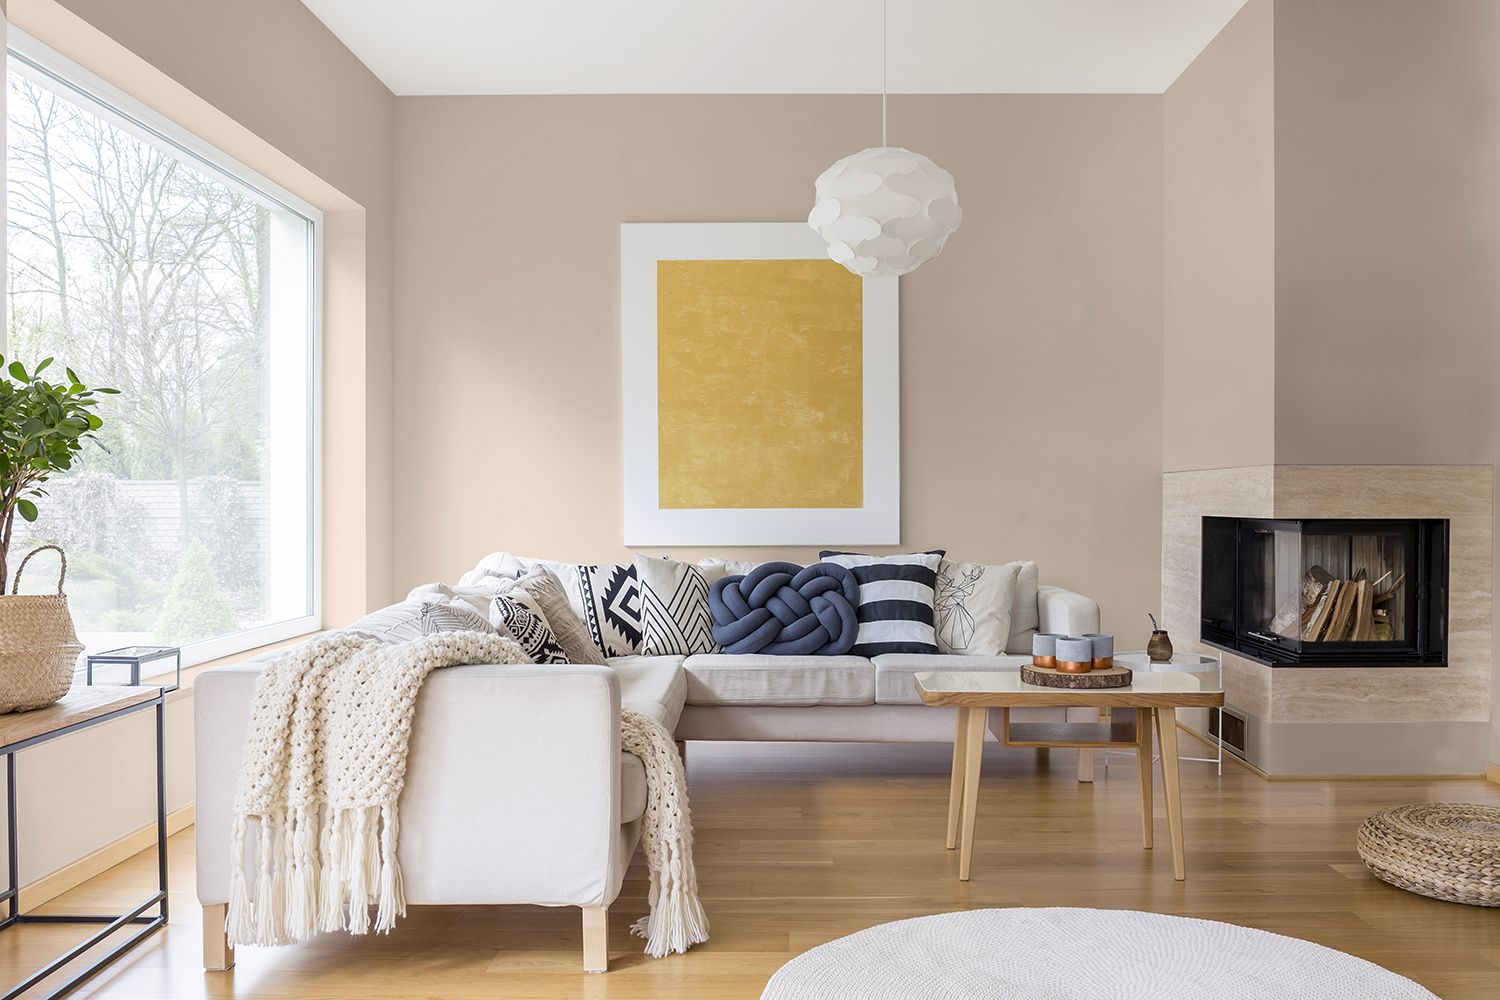 2020 Colour Trends Cool, Calm & Collected Right Here в